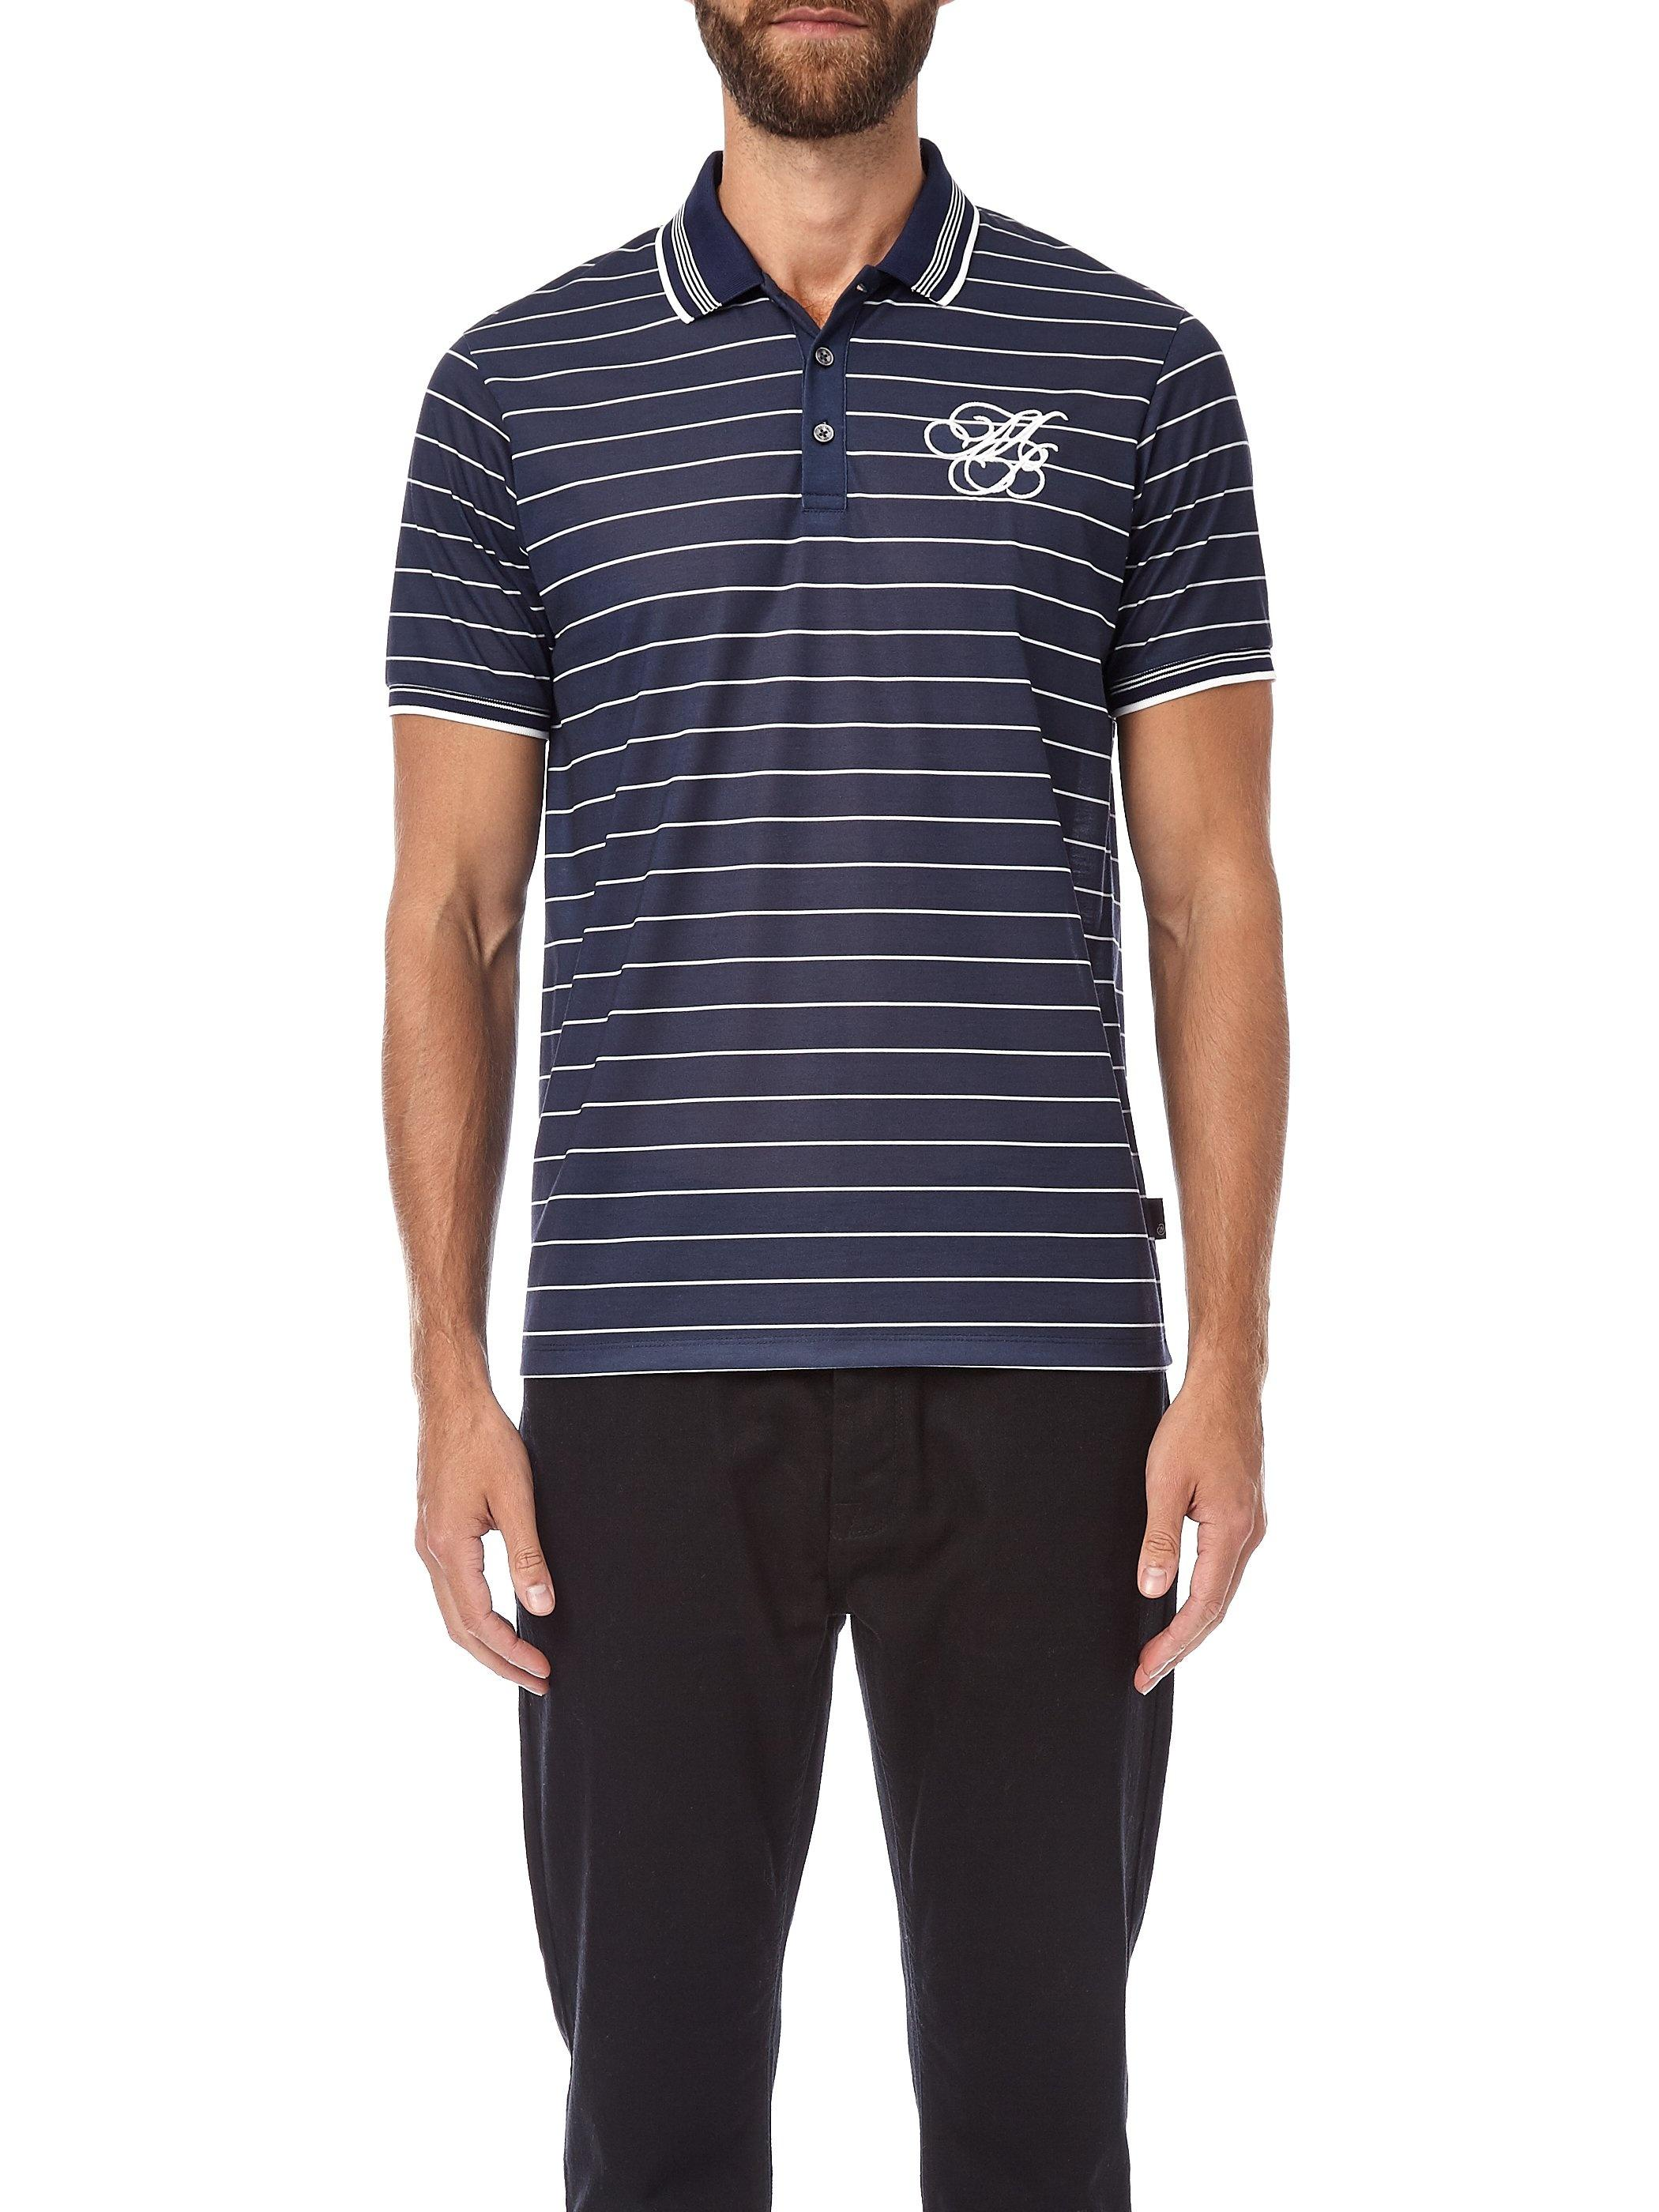 ccc51a2e Burton Navy And Ecru Striped Mb Embroidery Polo Shirt in Blue for Men - Lyst